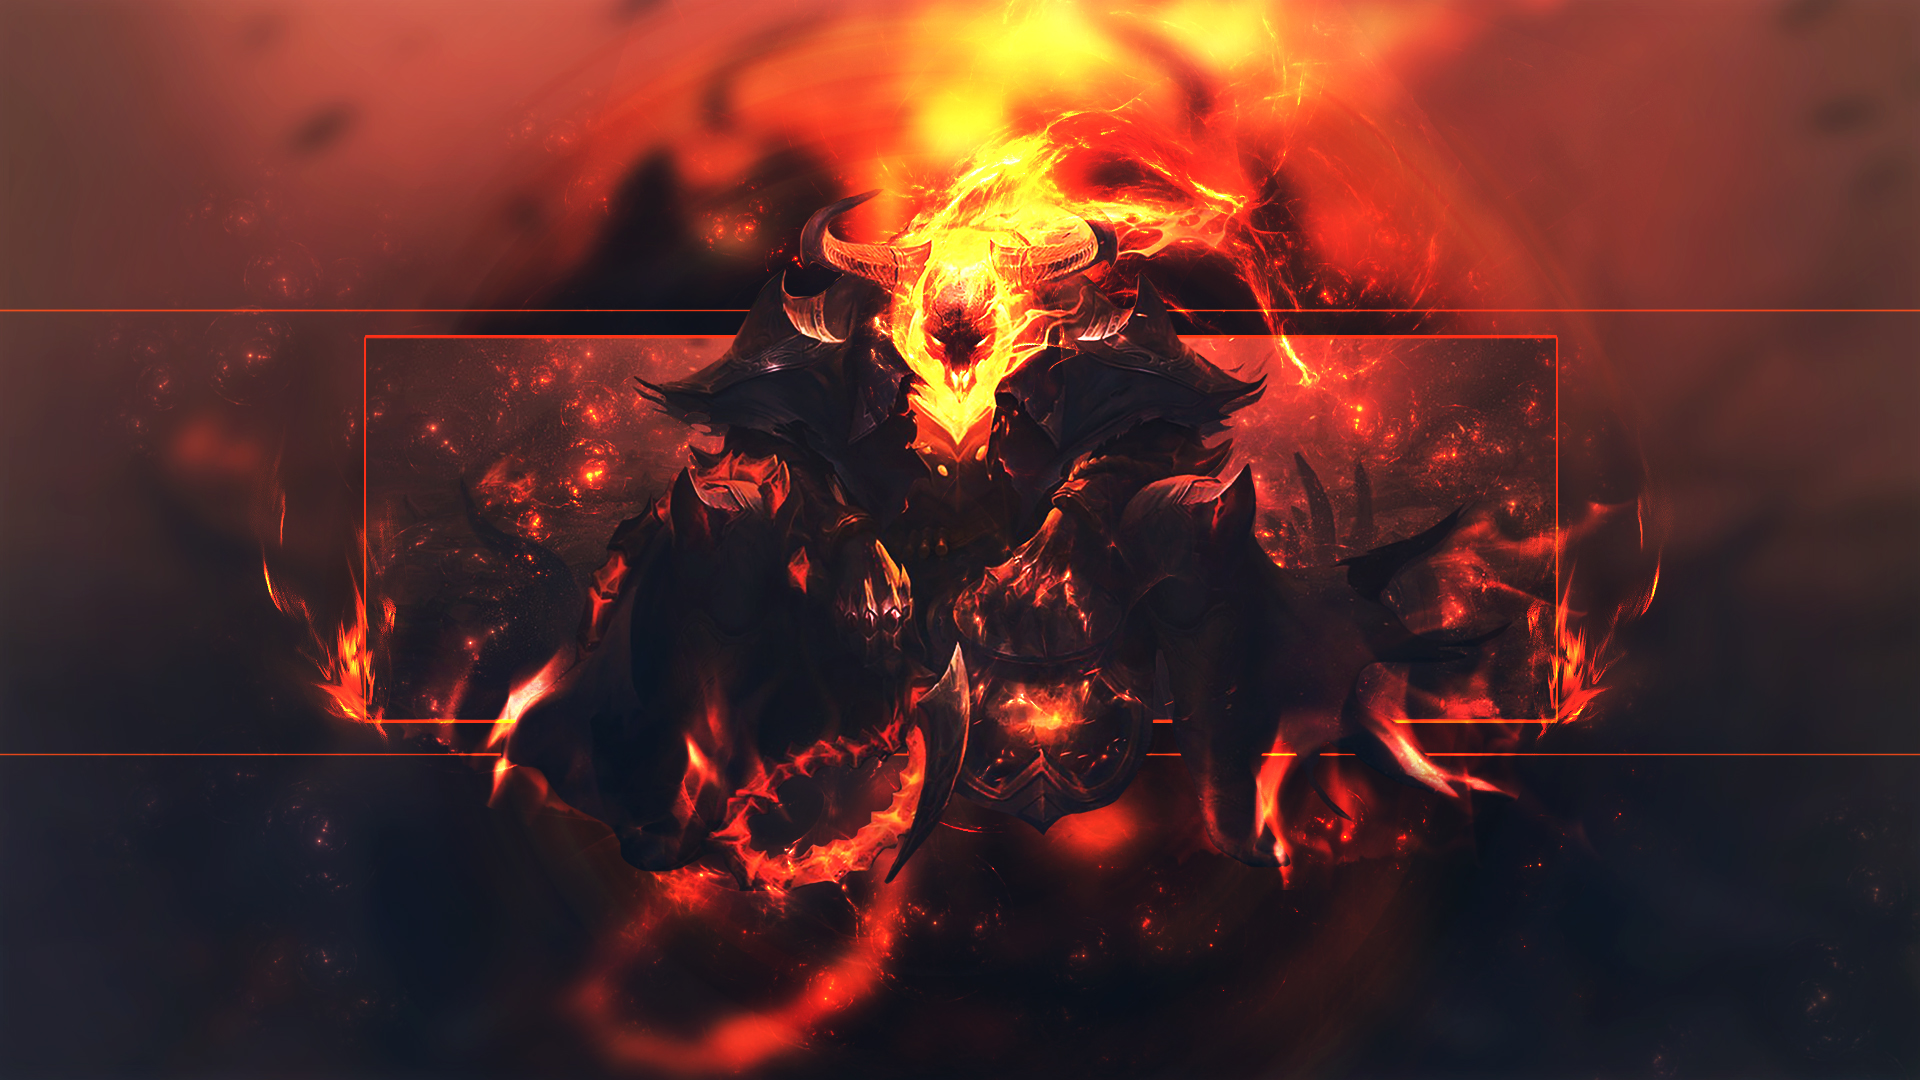 League Of Legends High Noon Thresh Wallpaper By Mr Booker On